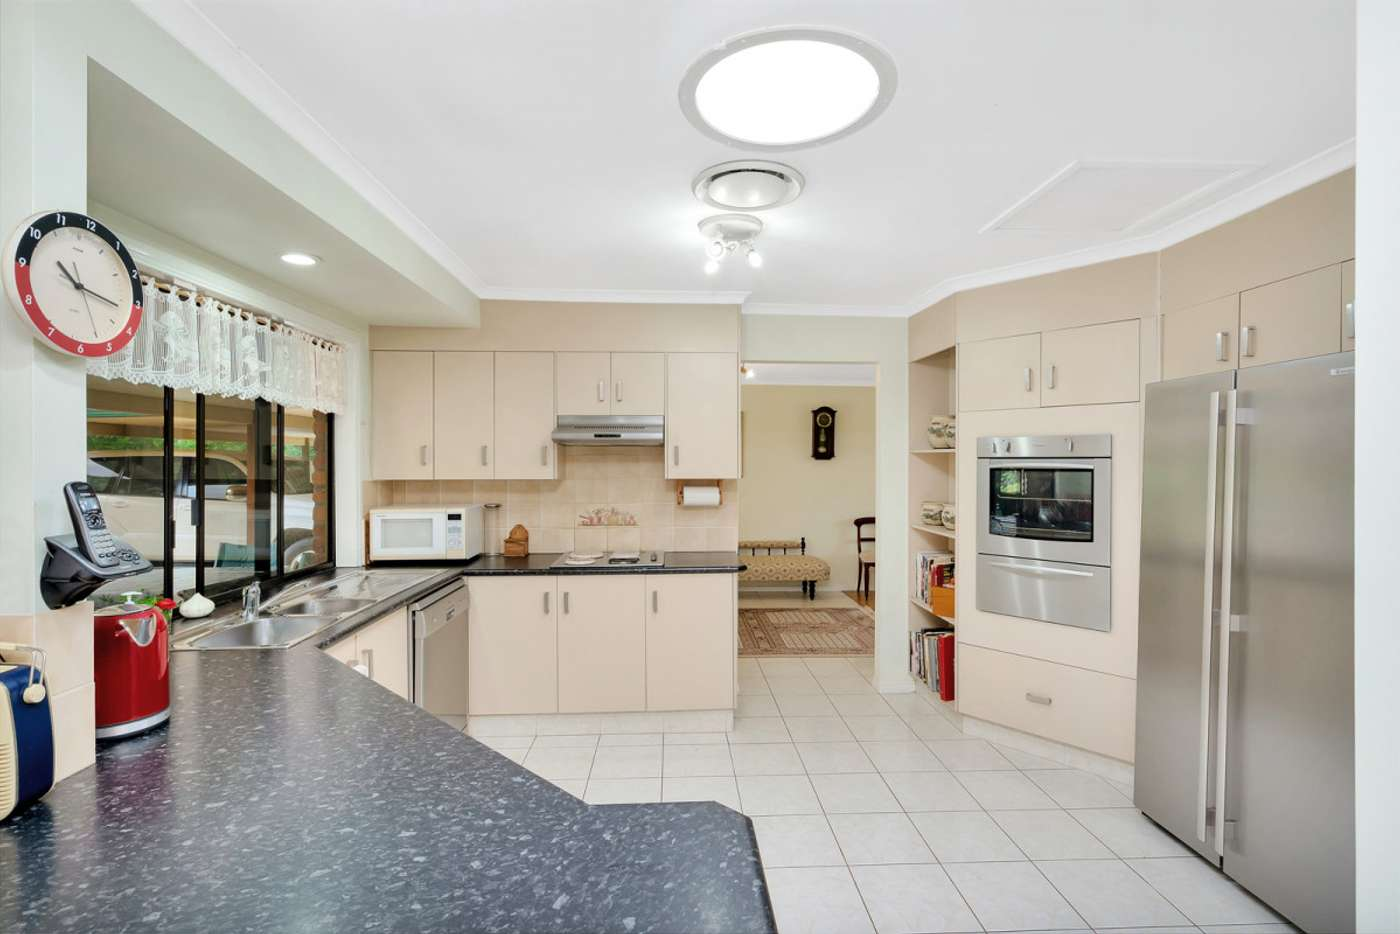 Seventh view of Homely house listing, 9-11 Bode Court, Witheren QLD 4275